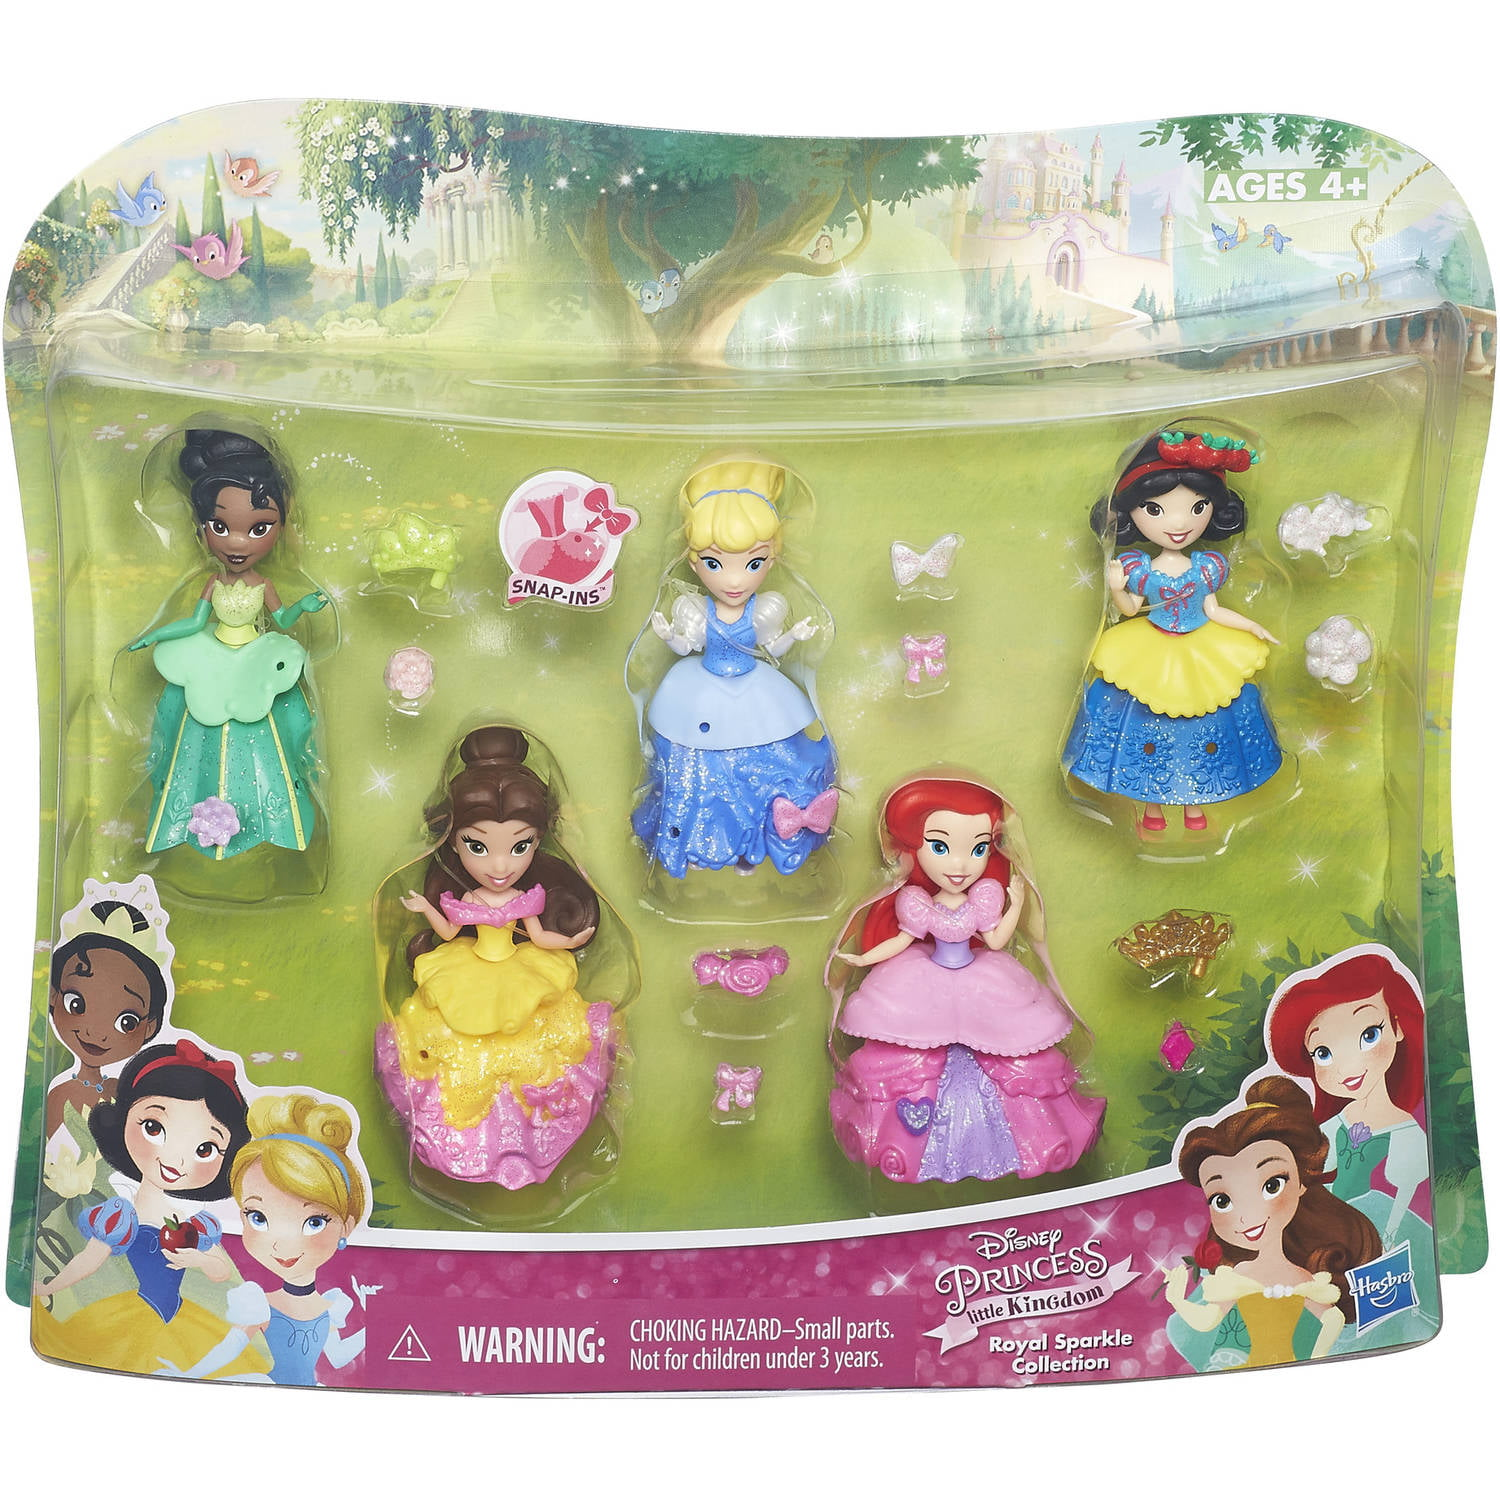 Disney princess little kingdom royal sparkle collection for Small princess